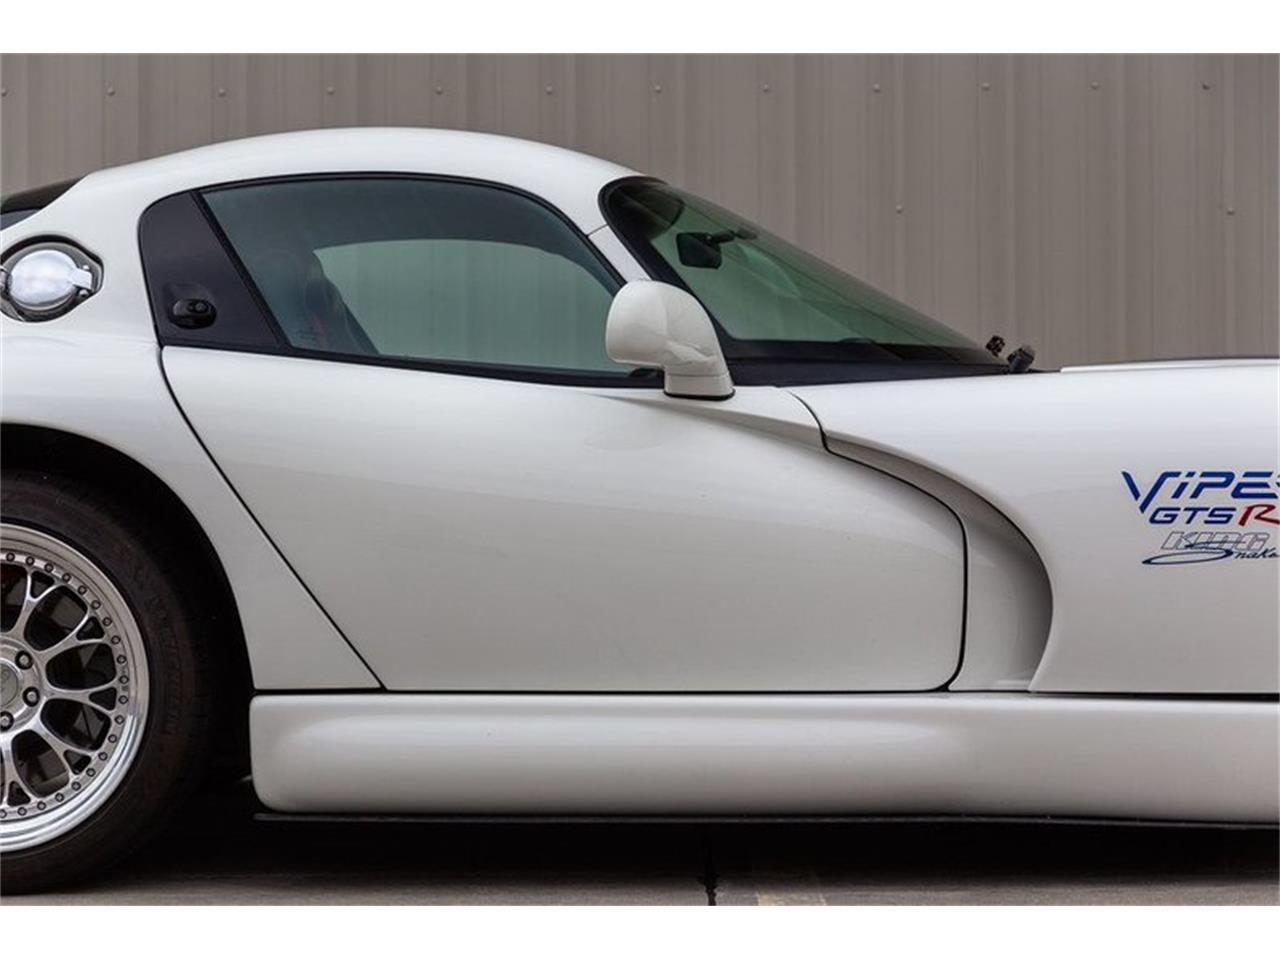 1998 Dodge Viper for sale in Lincoln, NE – photo 39